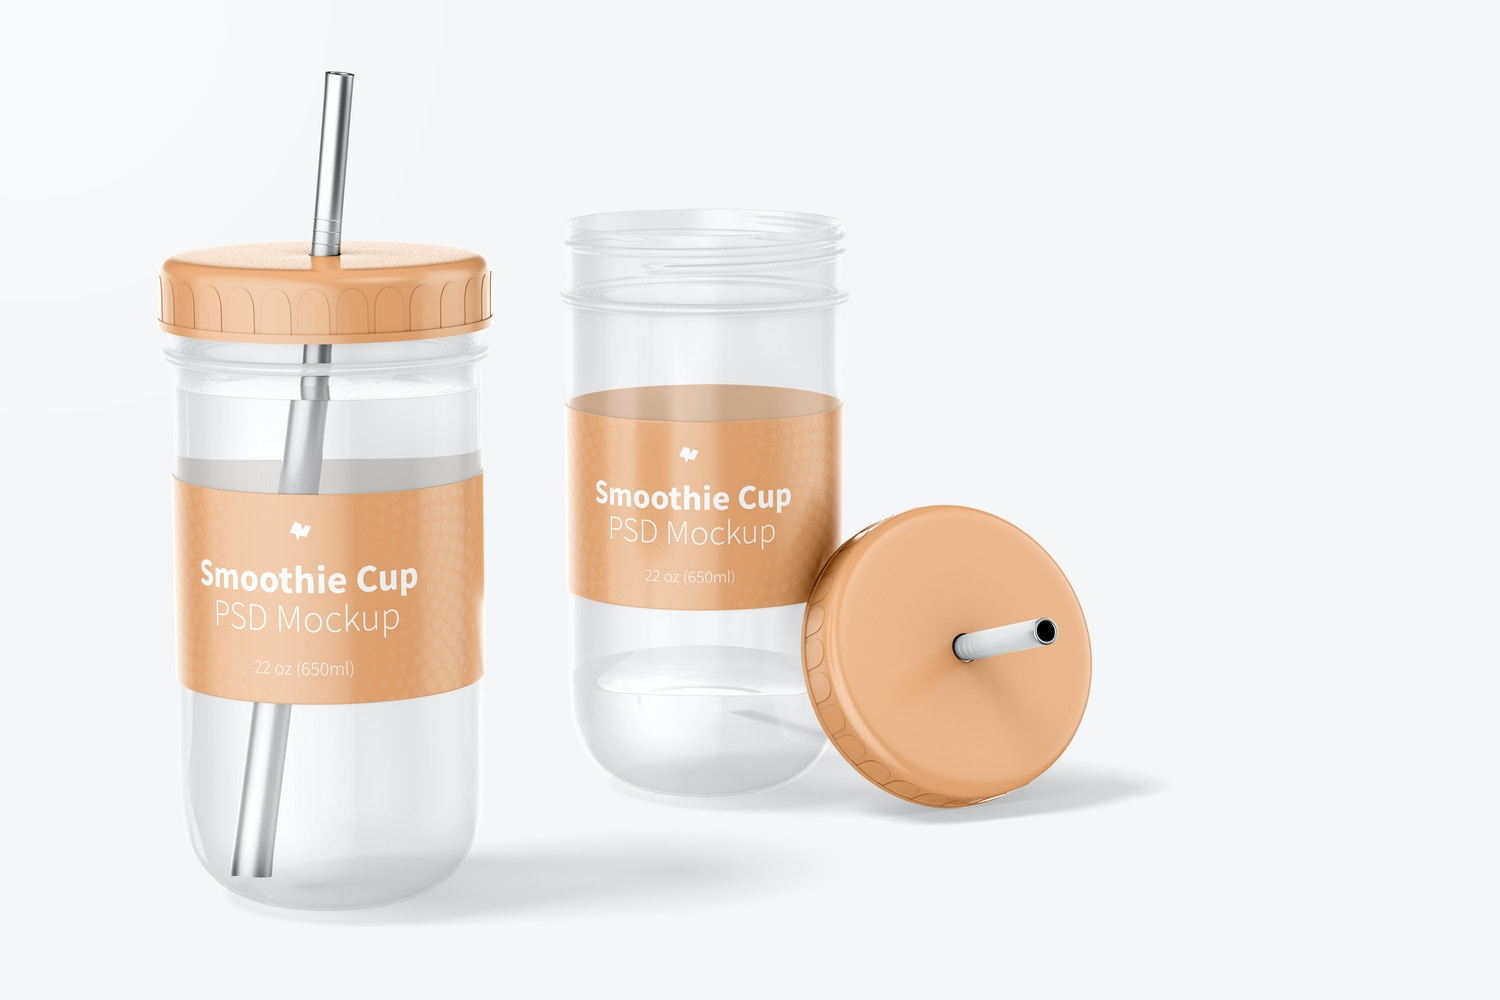 Smoothie Cups with Lid Mockup